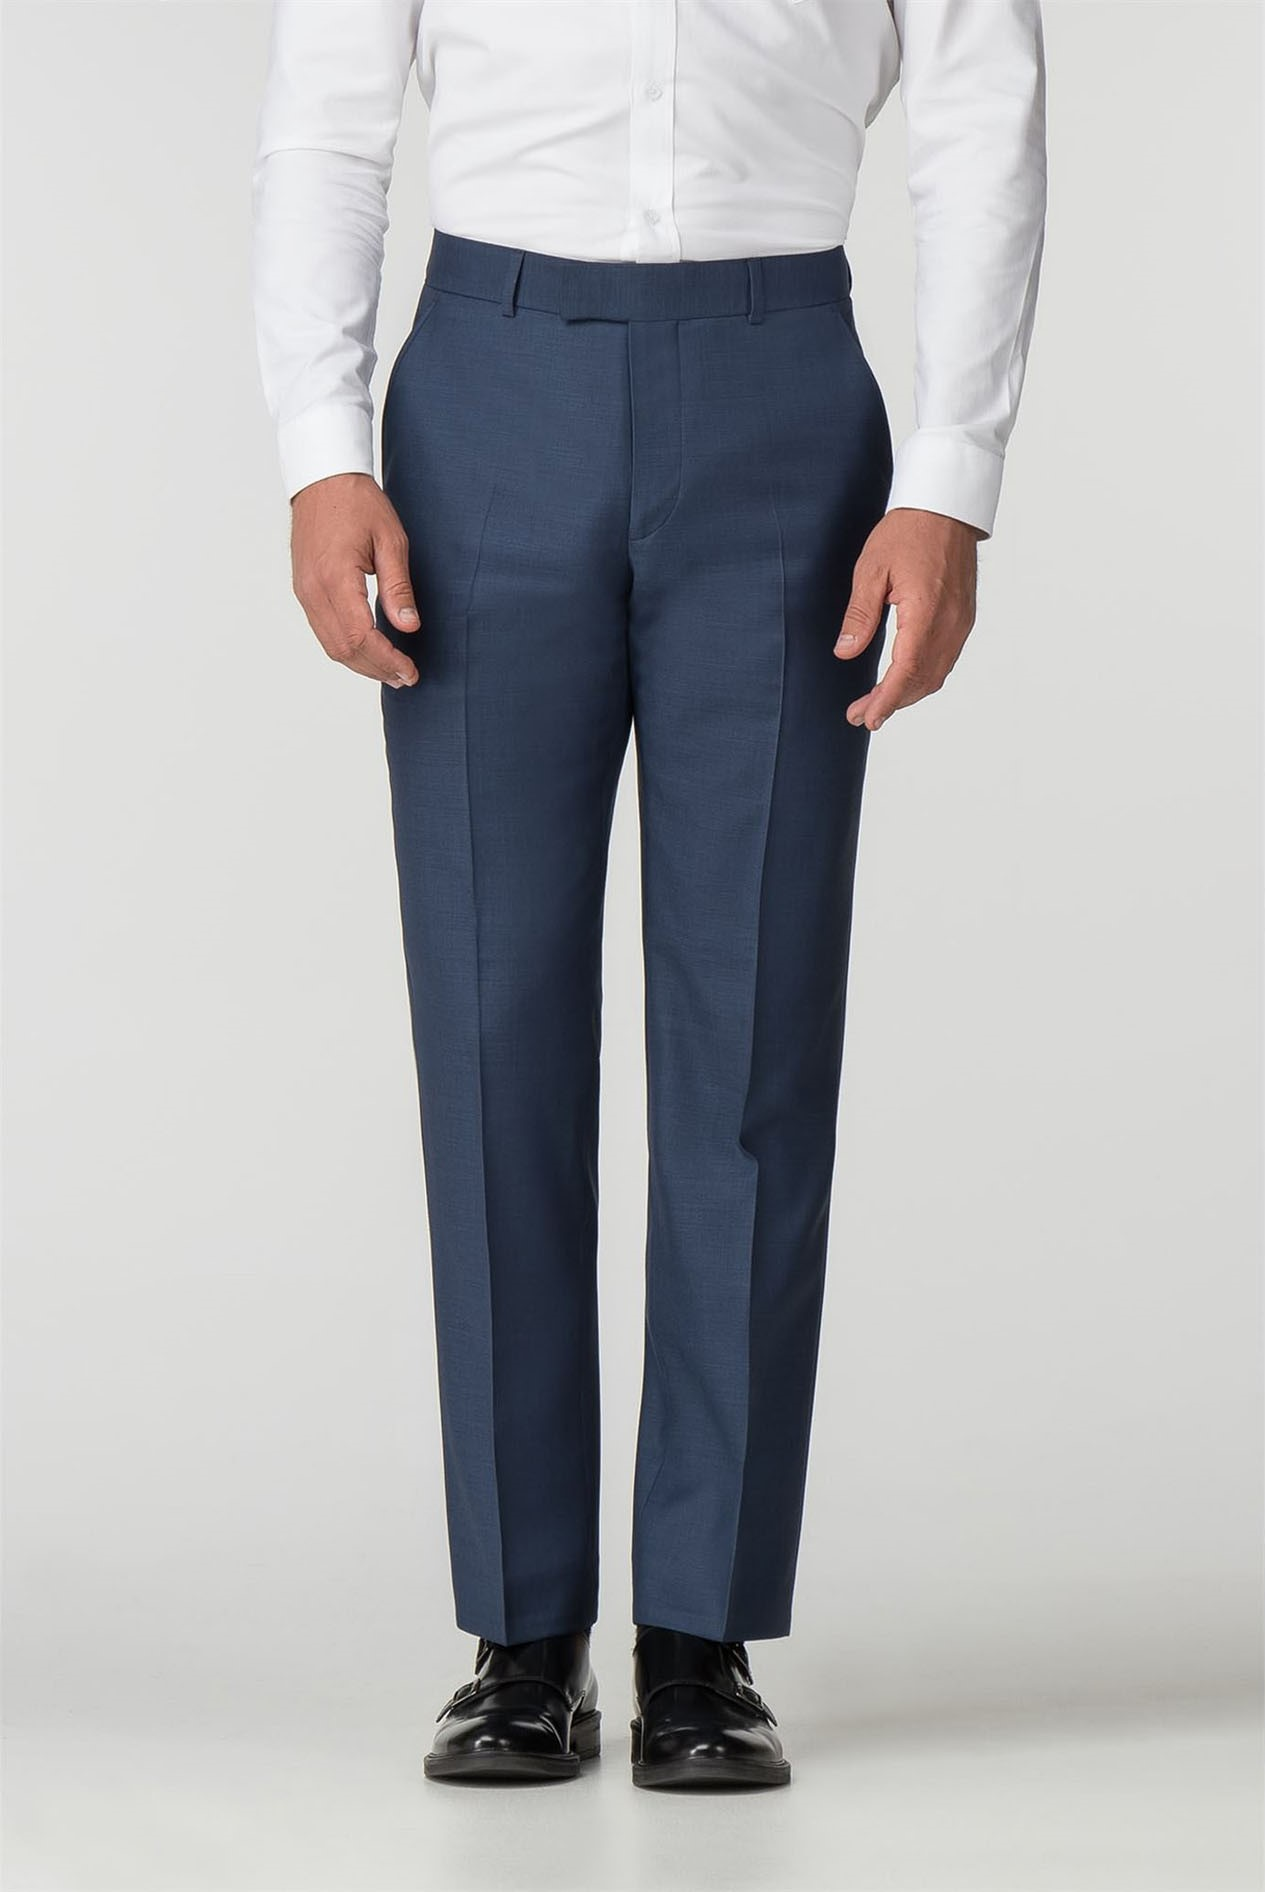 Alexandre Silver Label Mens Blue Suit Trouser in 30R to 42R